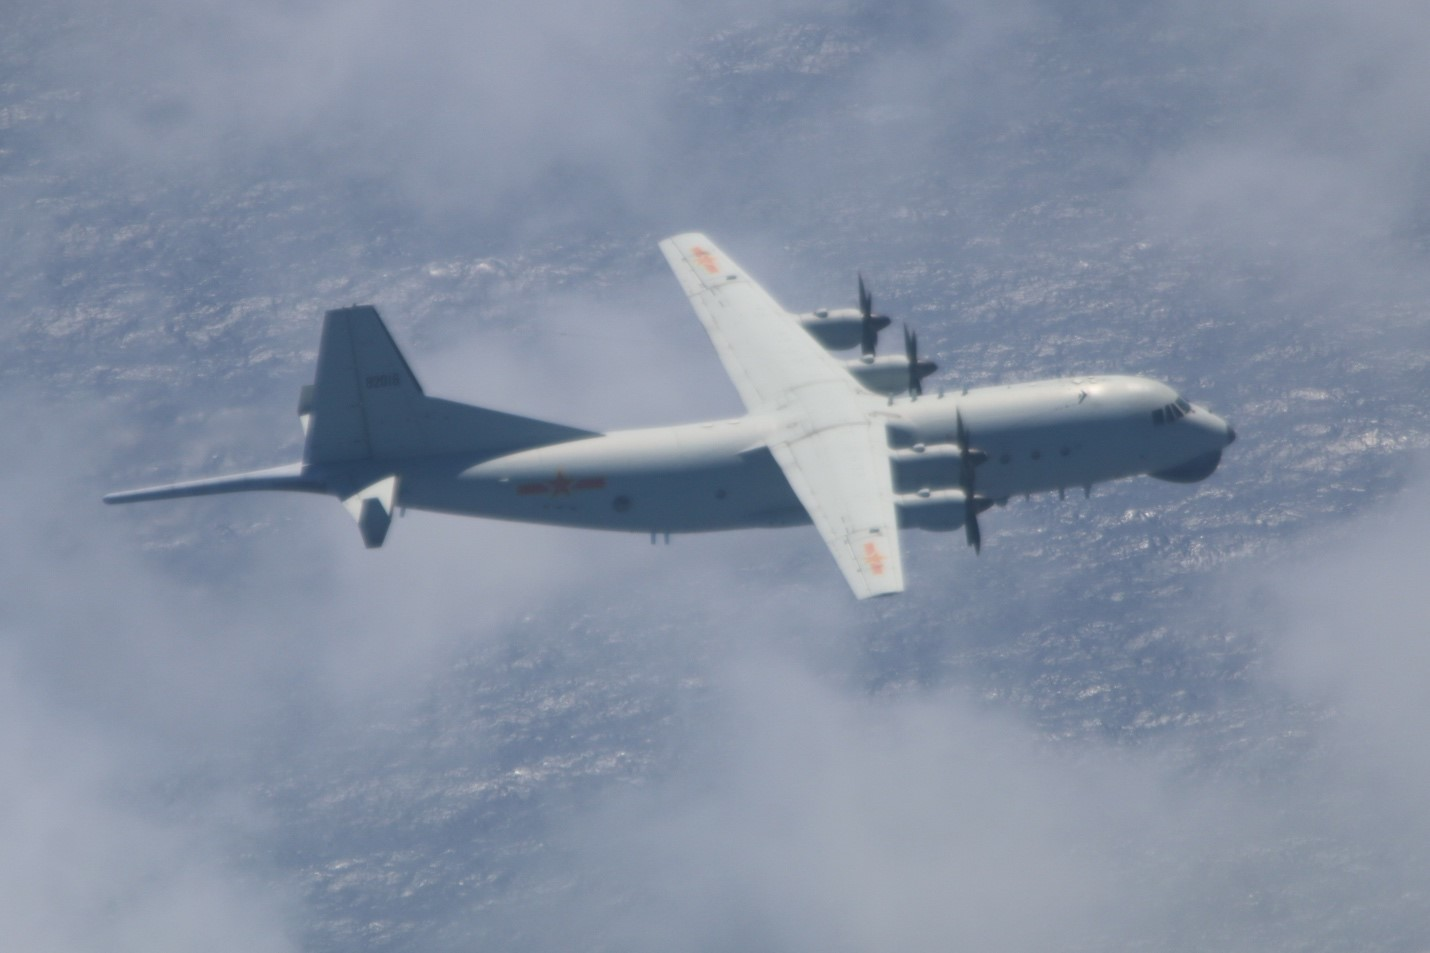 This Y-8 antisubmarine warfare plane belonging to the People's Liberation Army Air Force was spotted flying near Pratas island on Oct. 11, 2020.